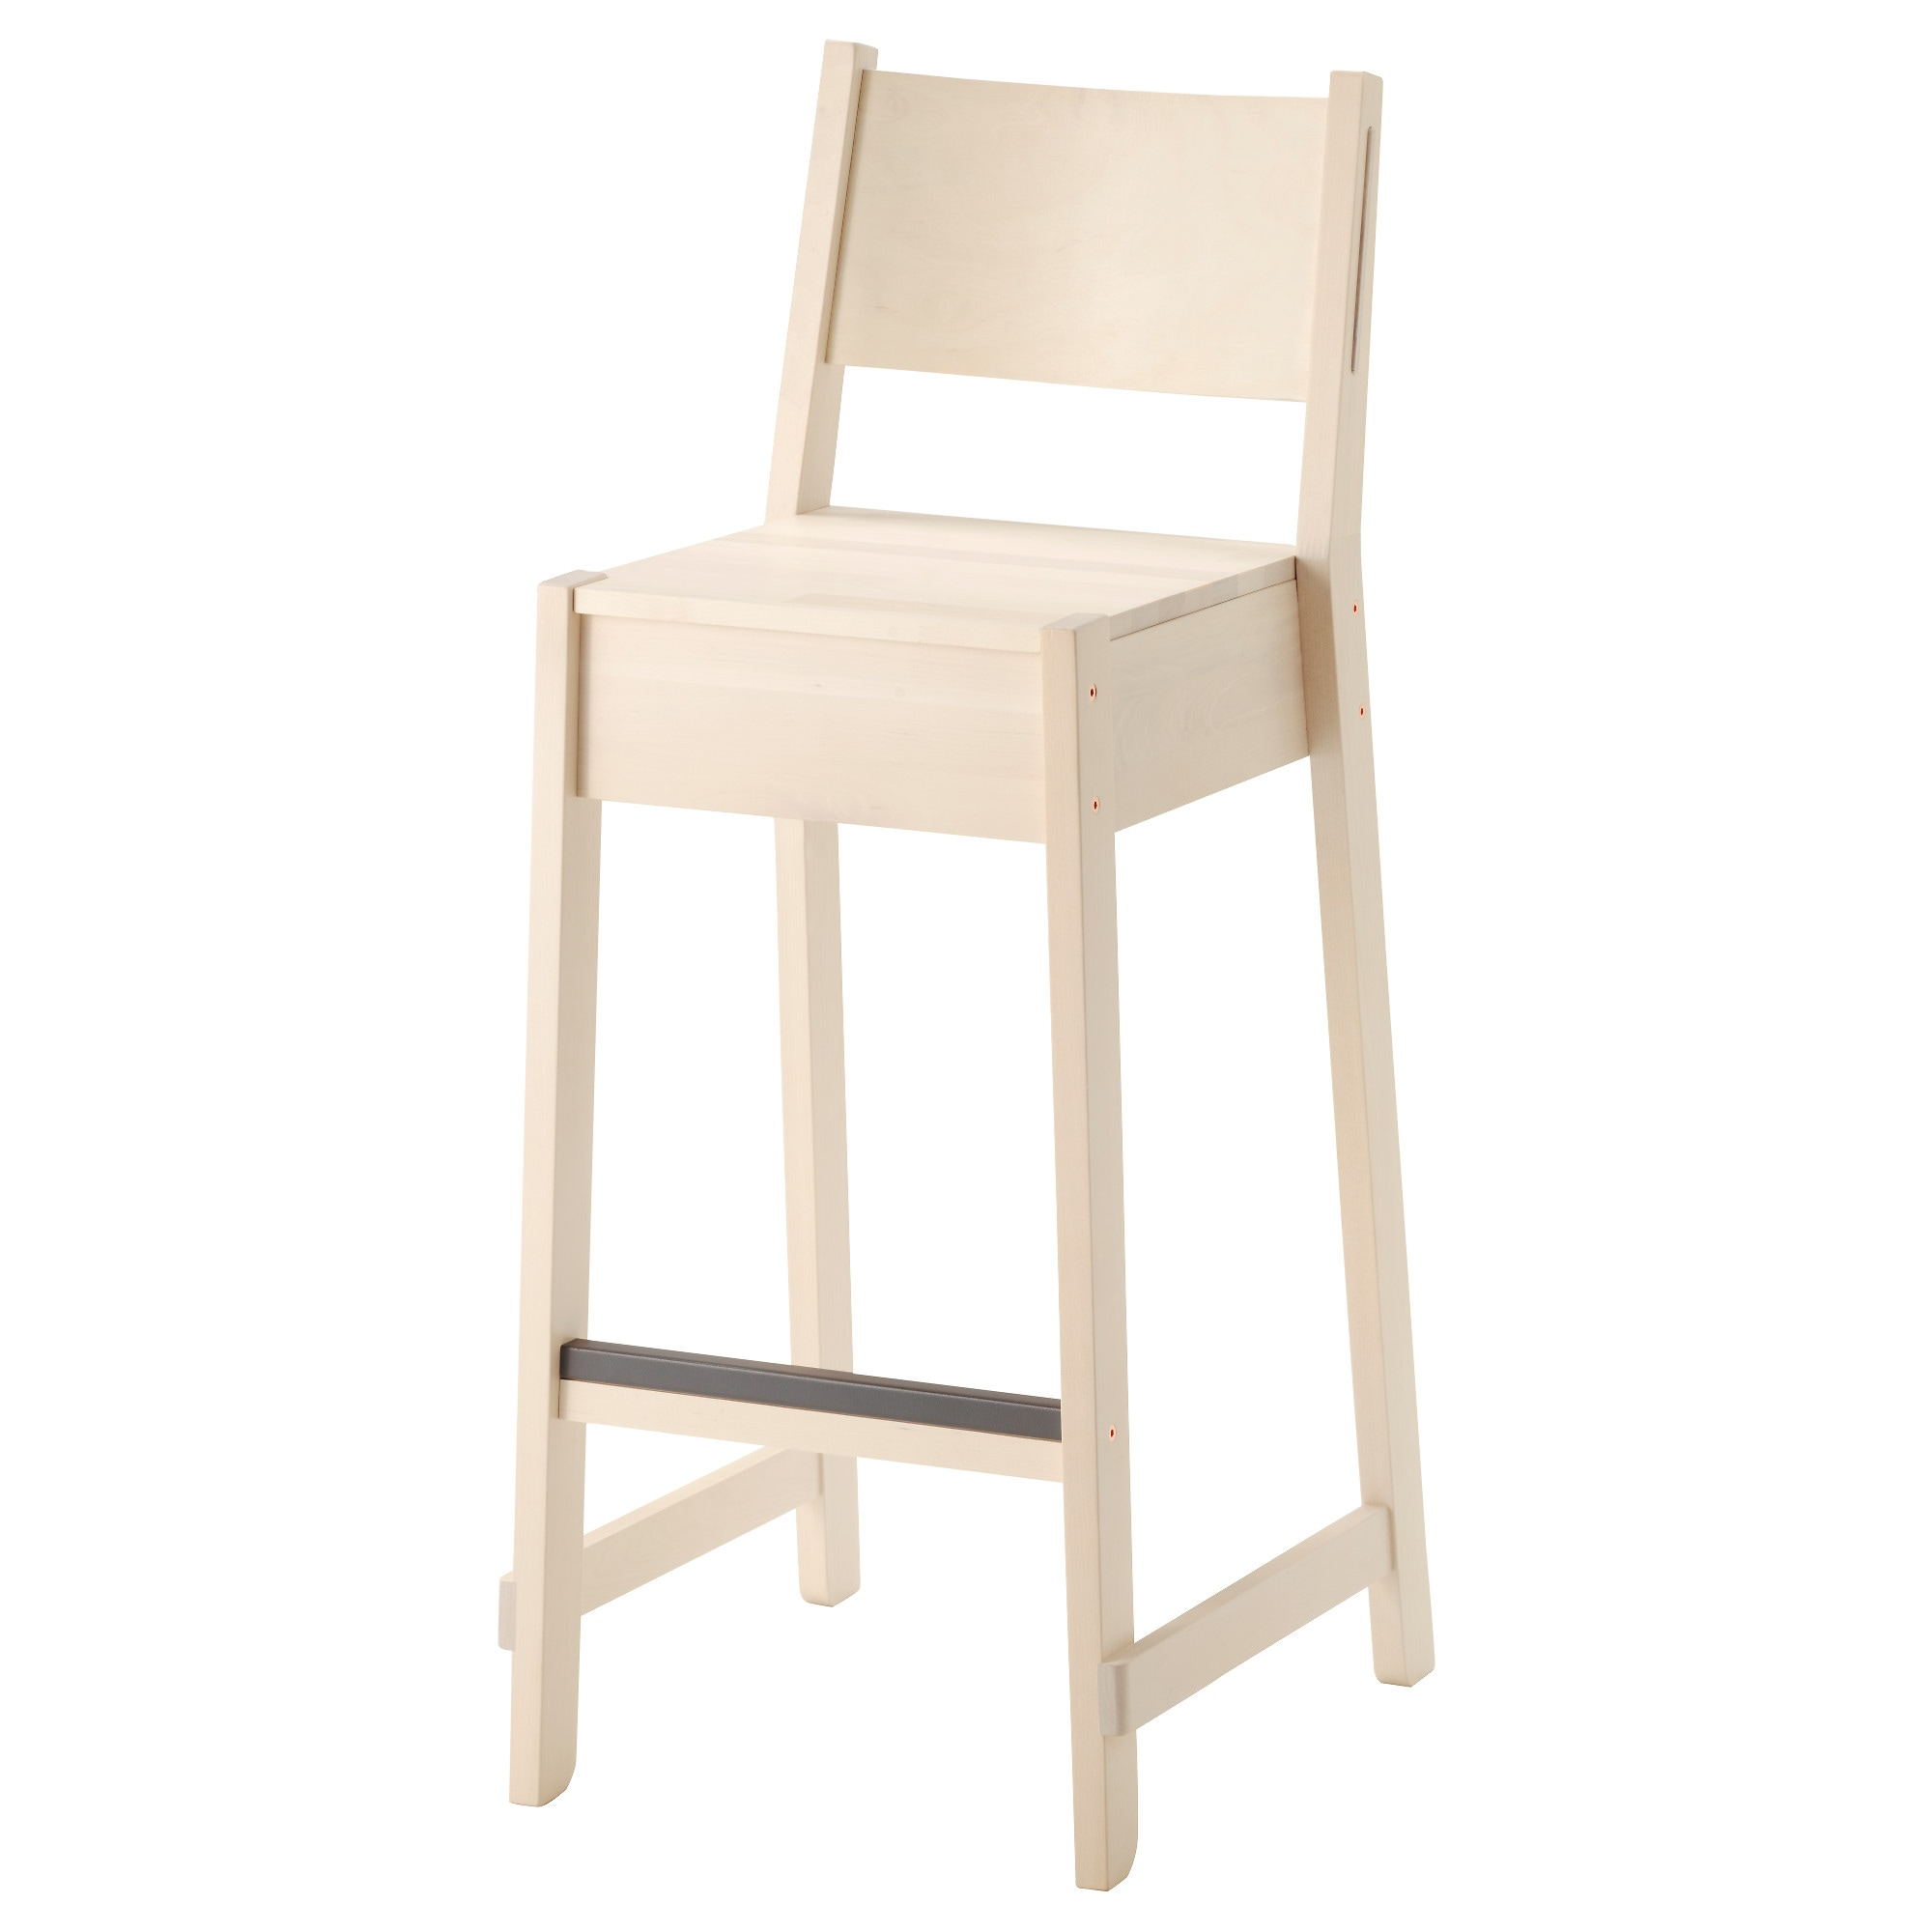 NORRKER bar stool with backrest, white birch Tested for: 265 lb Width: 16